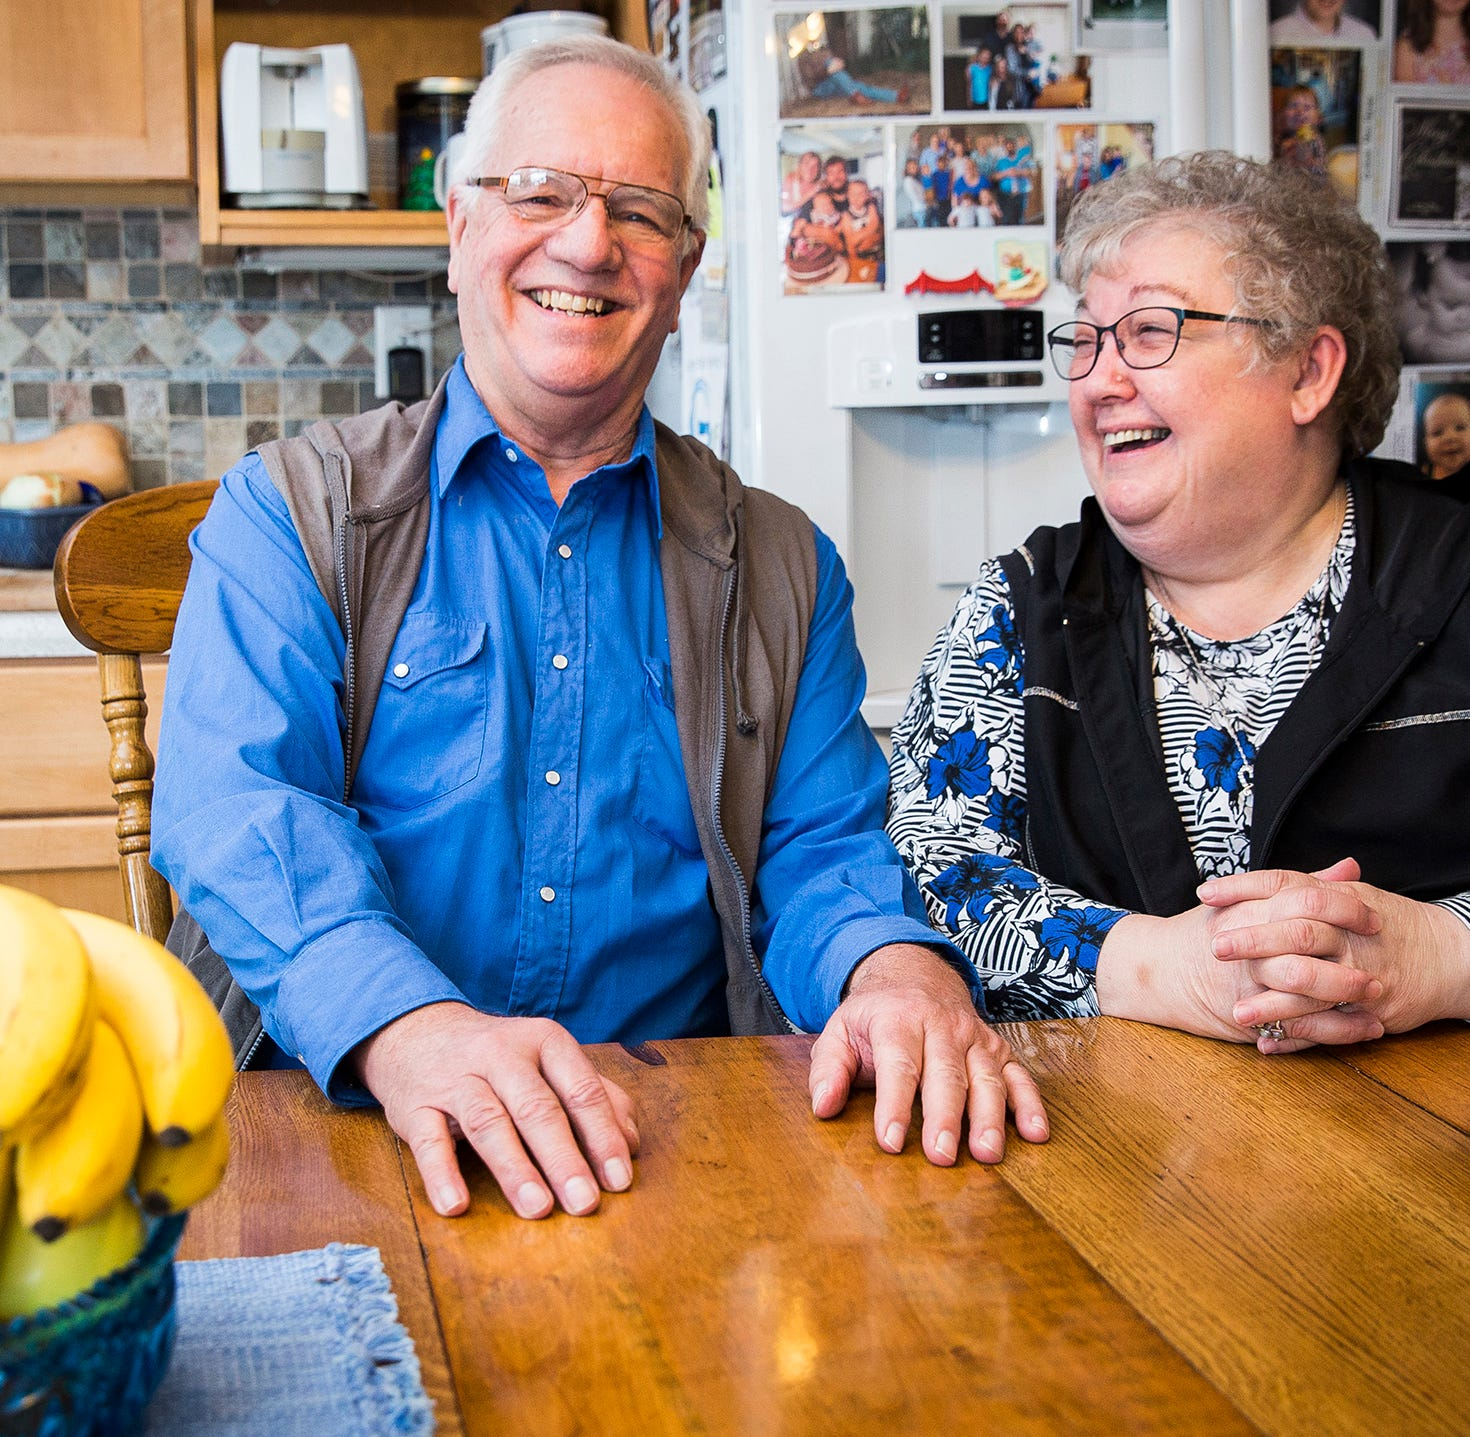 Local couple ready to start 'new chapter' together after colon cancer scare